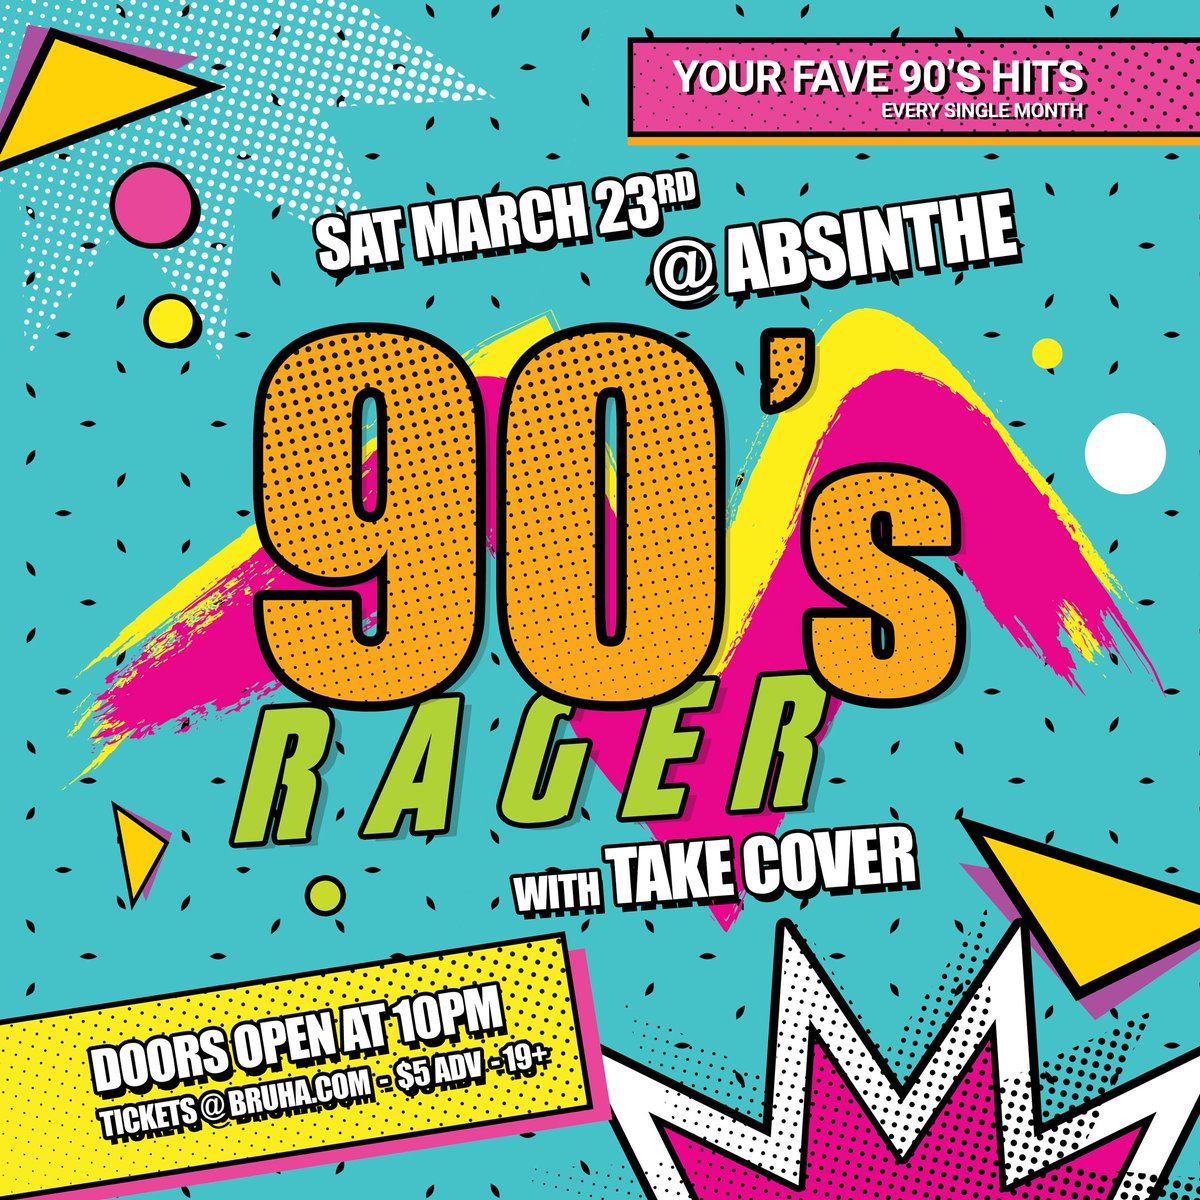 SATURDAY! Grab your Nerf gun and Airwalks and prepare for our monthly 90'S RAGER with @takecoverlive playing your fave 90's hits all night. Plus DJ PARTY JESUS spinning the freshest tunes this side of Napster. Cheap $5 tickets here: http://bit.ly/2HzXfmE